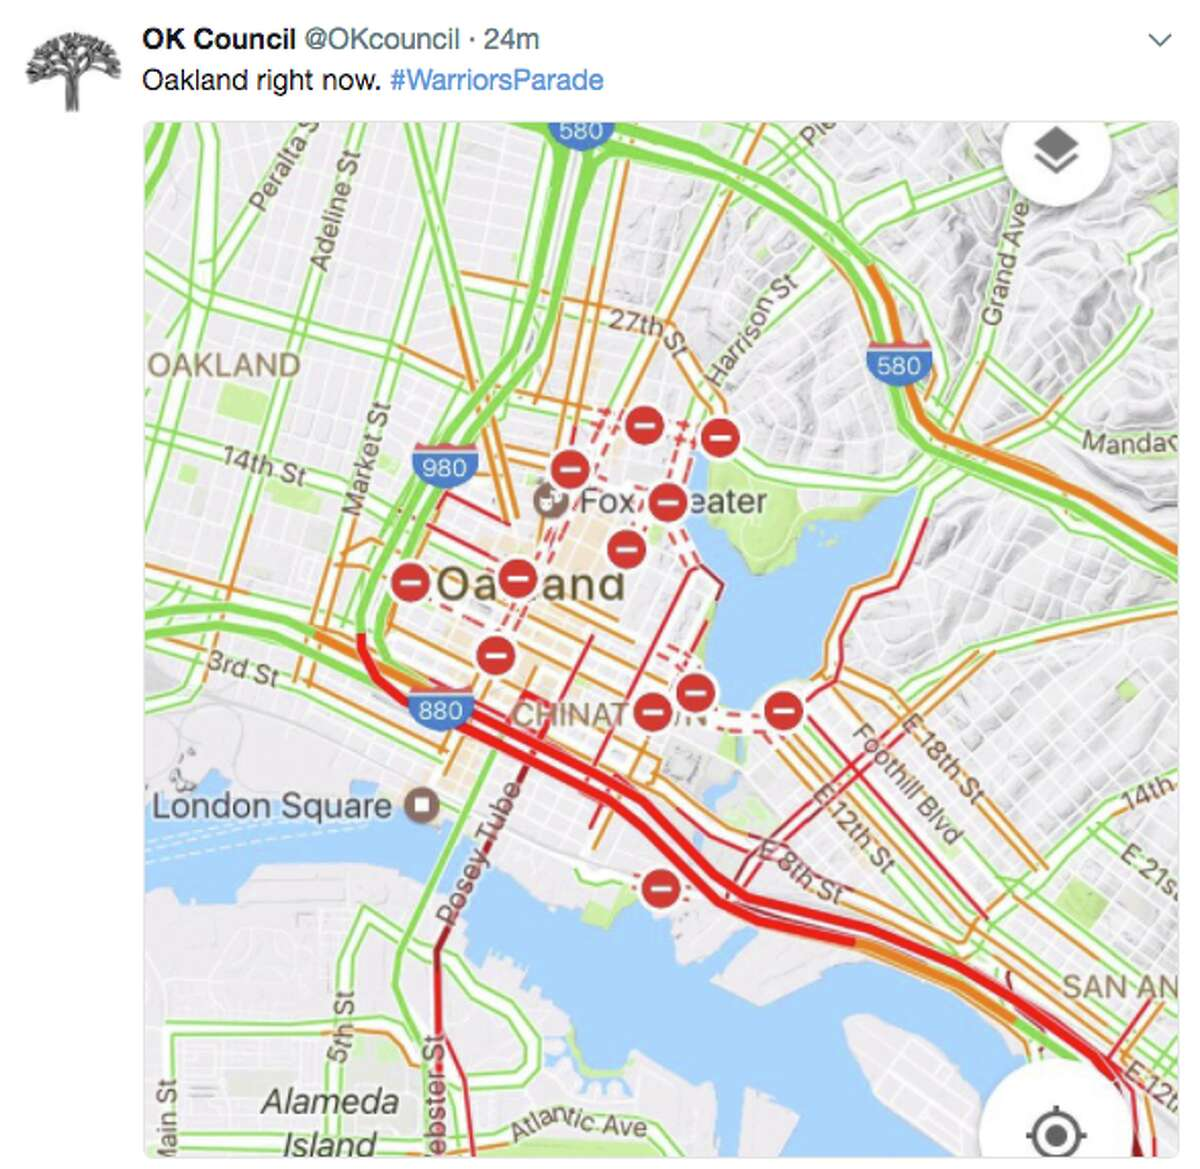 With a million people expected to pour into Oakland to watch the Golden State Warriors NBA Championship parade Thursday, traffic and transportation in the Bay Area is a nightmare.